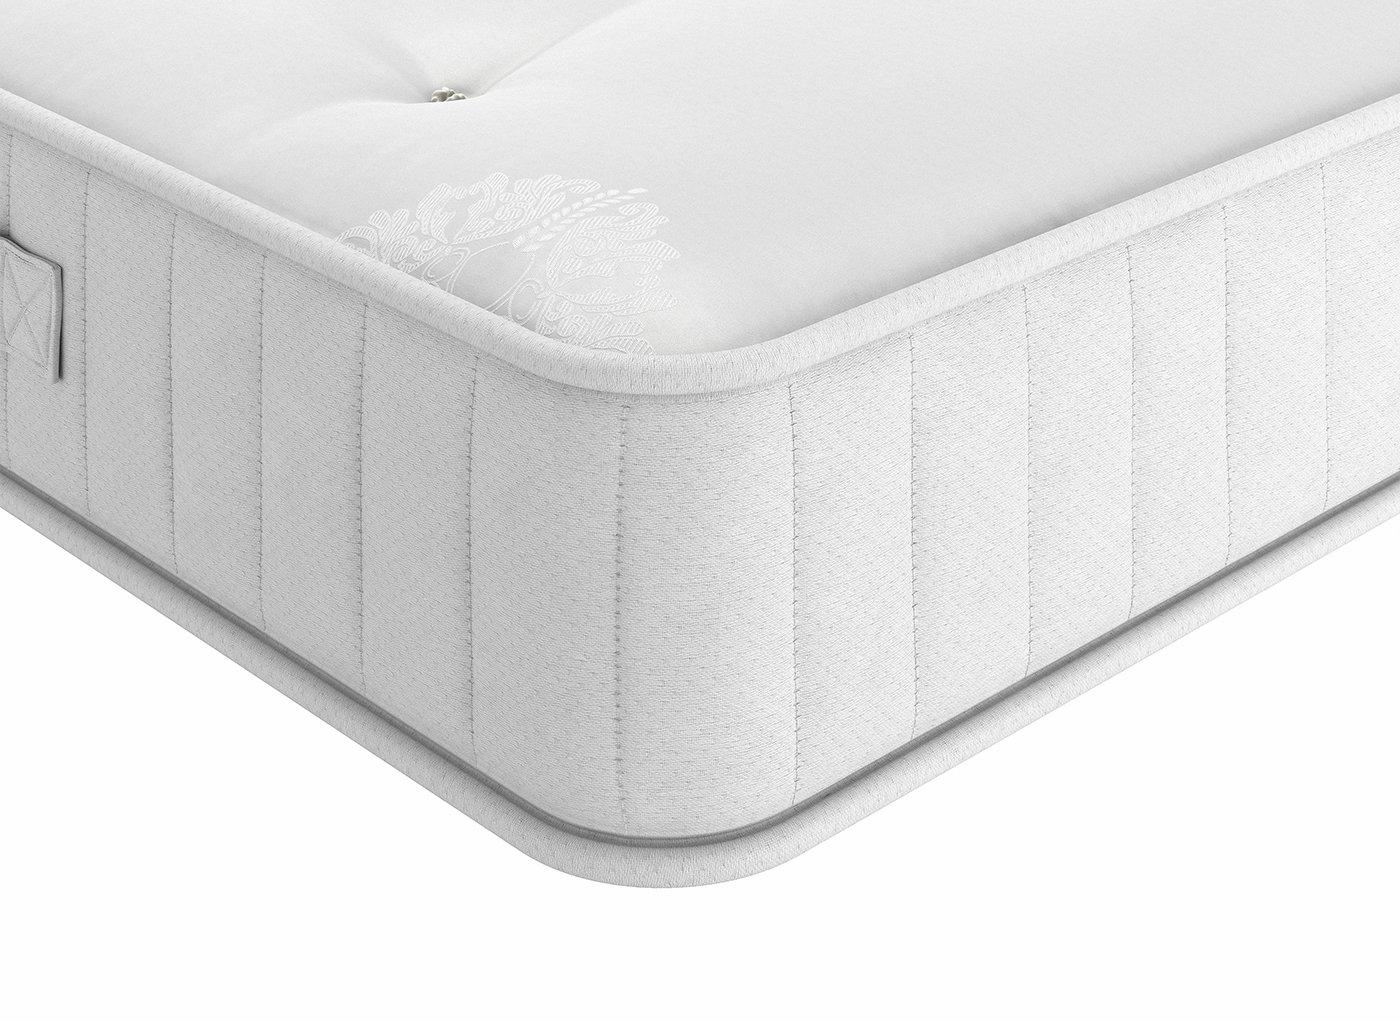 Mille Pocket Sprung Mattress 6'0 Super king